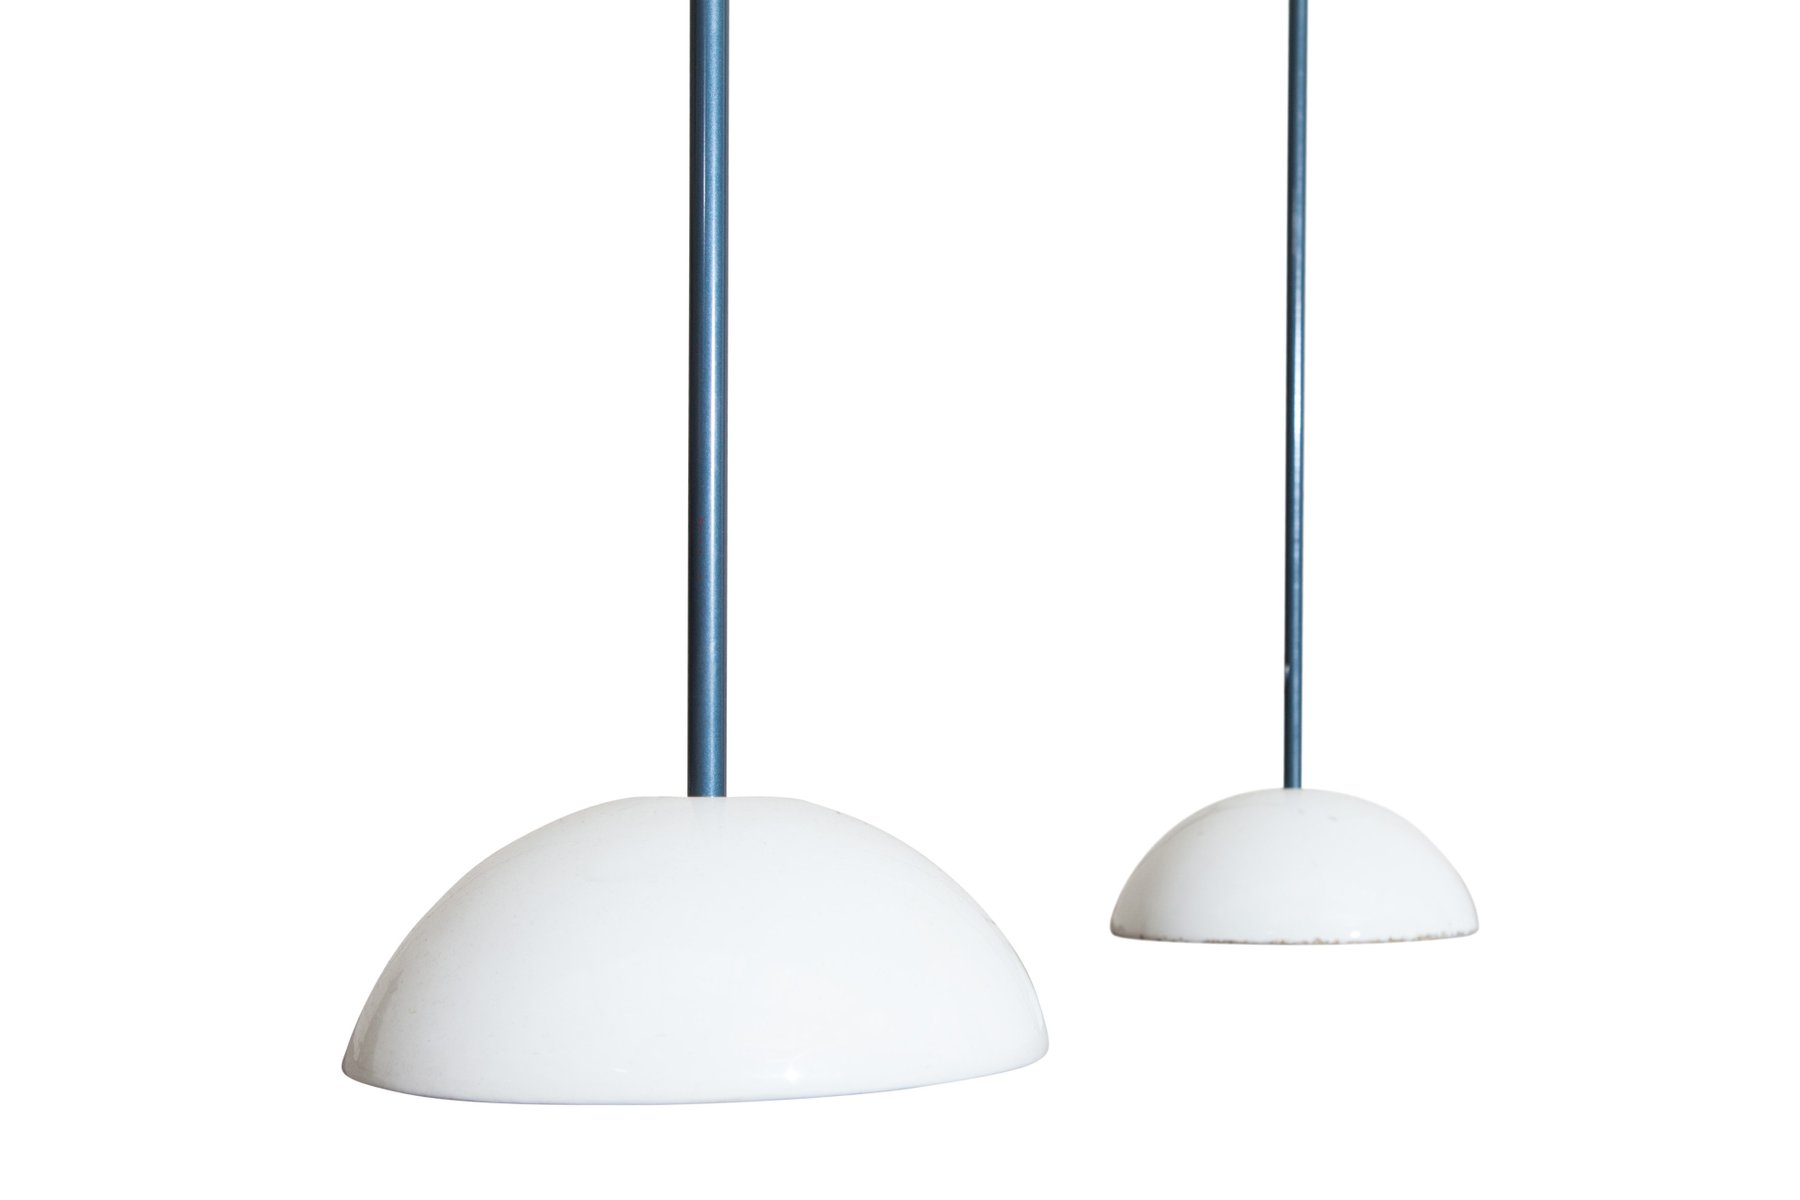 Vintage Bip-Bip Floor Lamps by Achille Castiglioni for Flos, Set of 2 for sale at Pamono